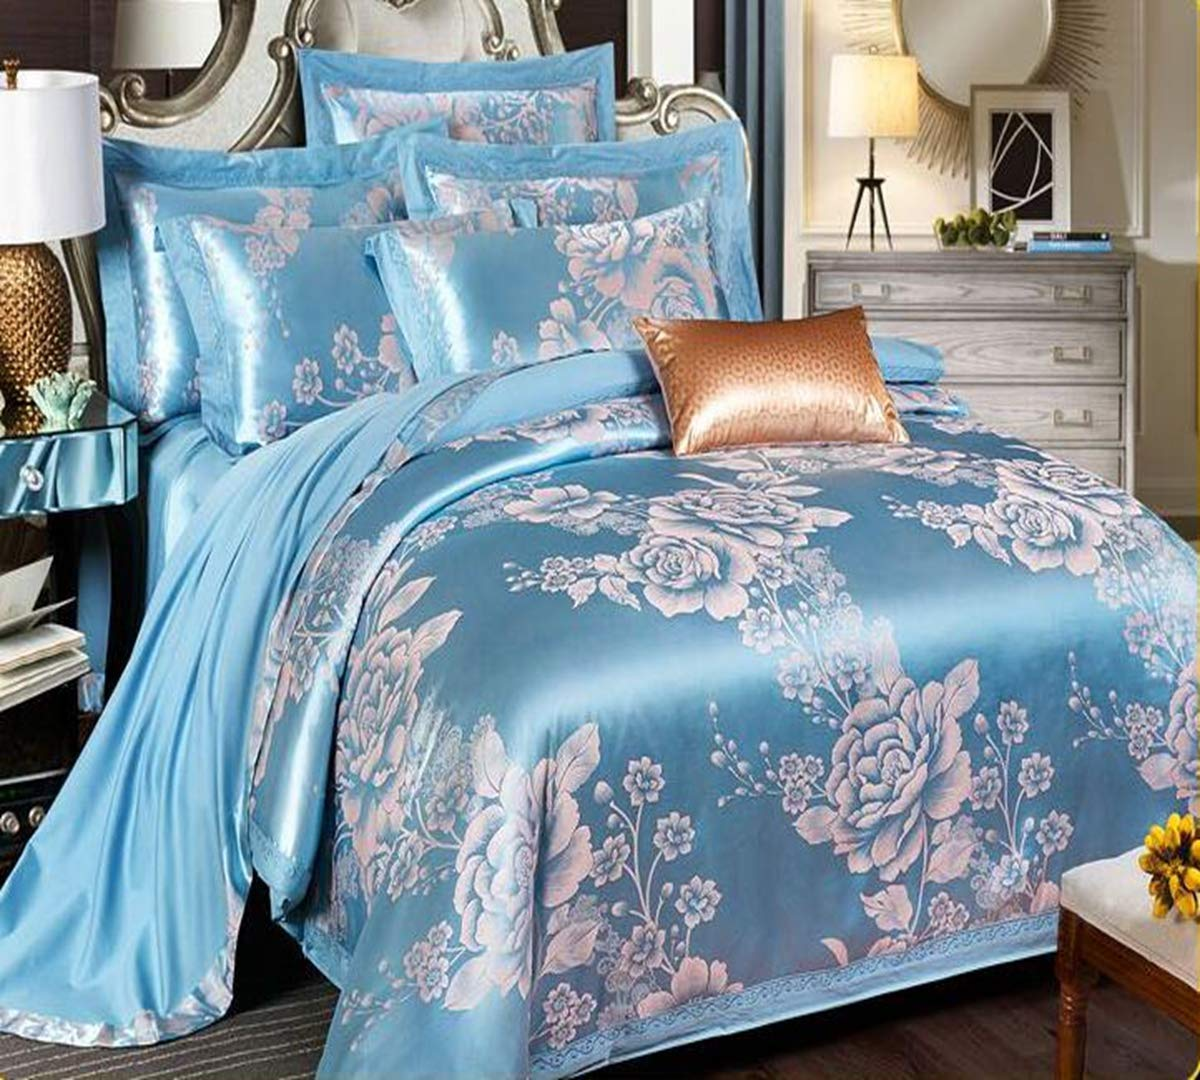 Comfortable Bed Cover Satin Jacquard,The New Bedding Four Sets,European Style Bedding Kits 4 Pcs for Bed Size Twin/Queen/King (Size : Twin/Queen)